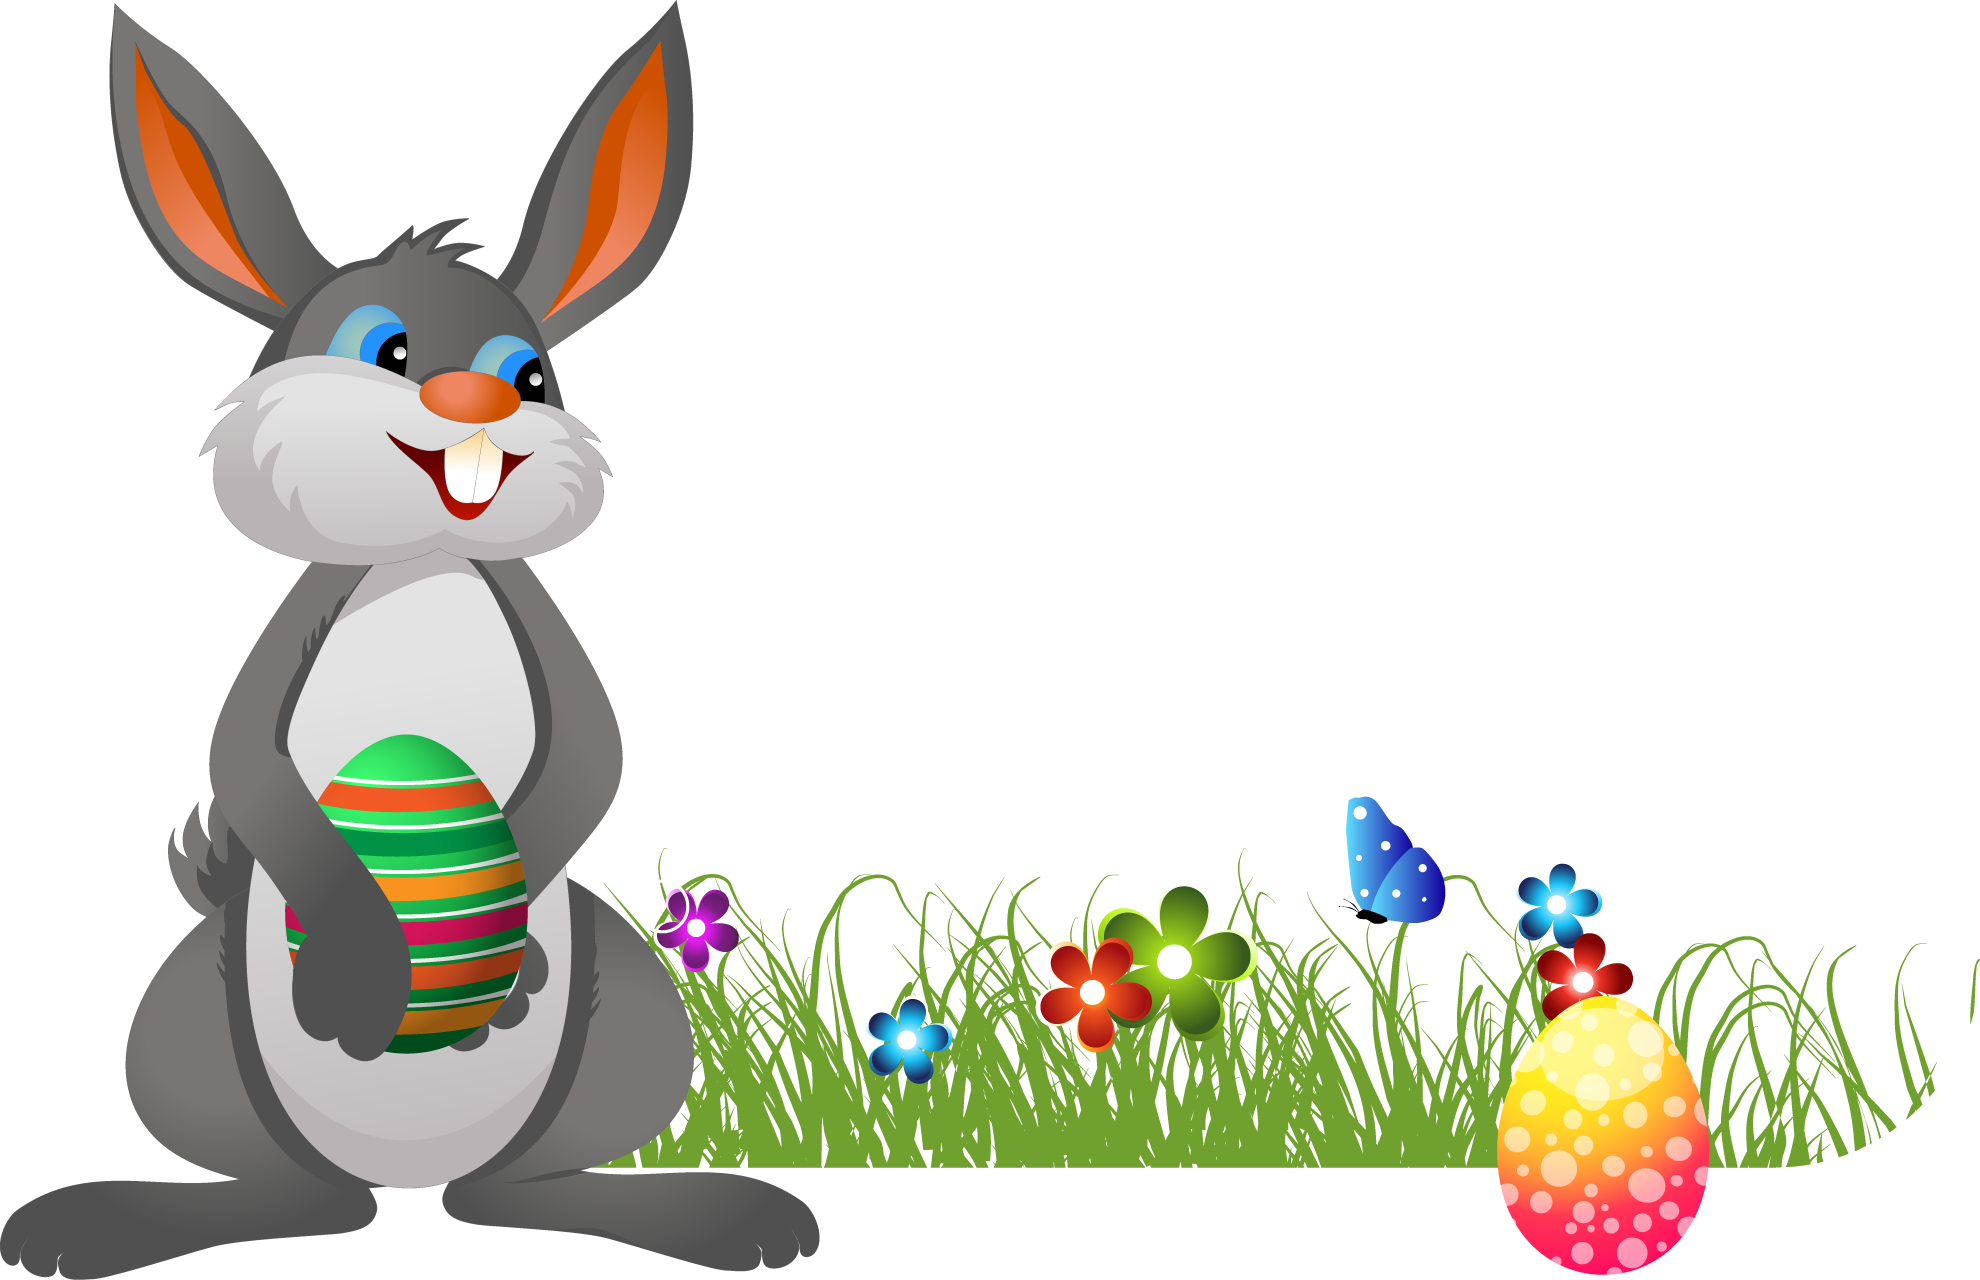 Easter Bunny PNG - 7724